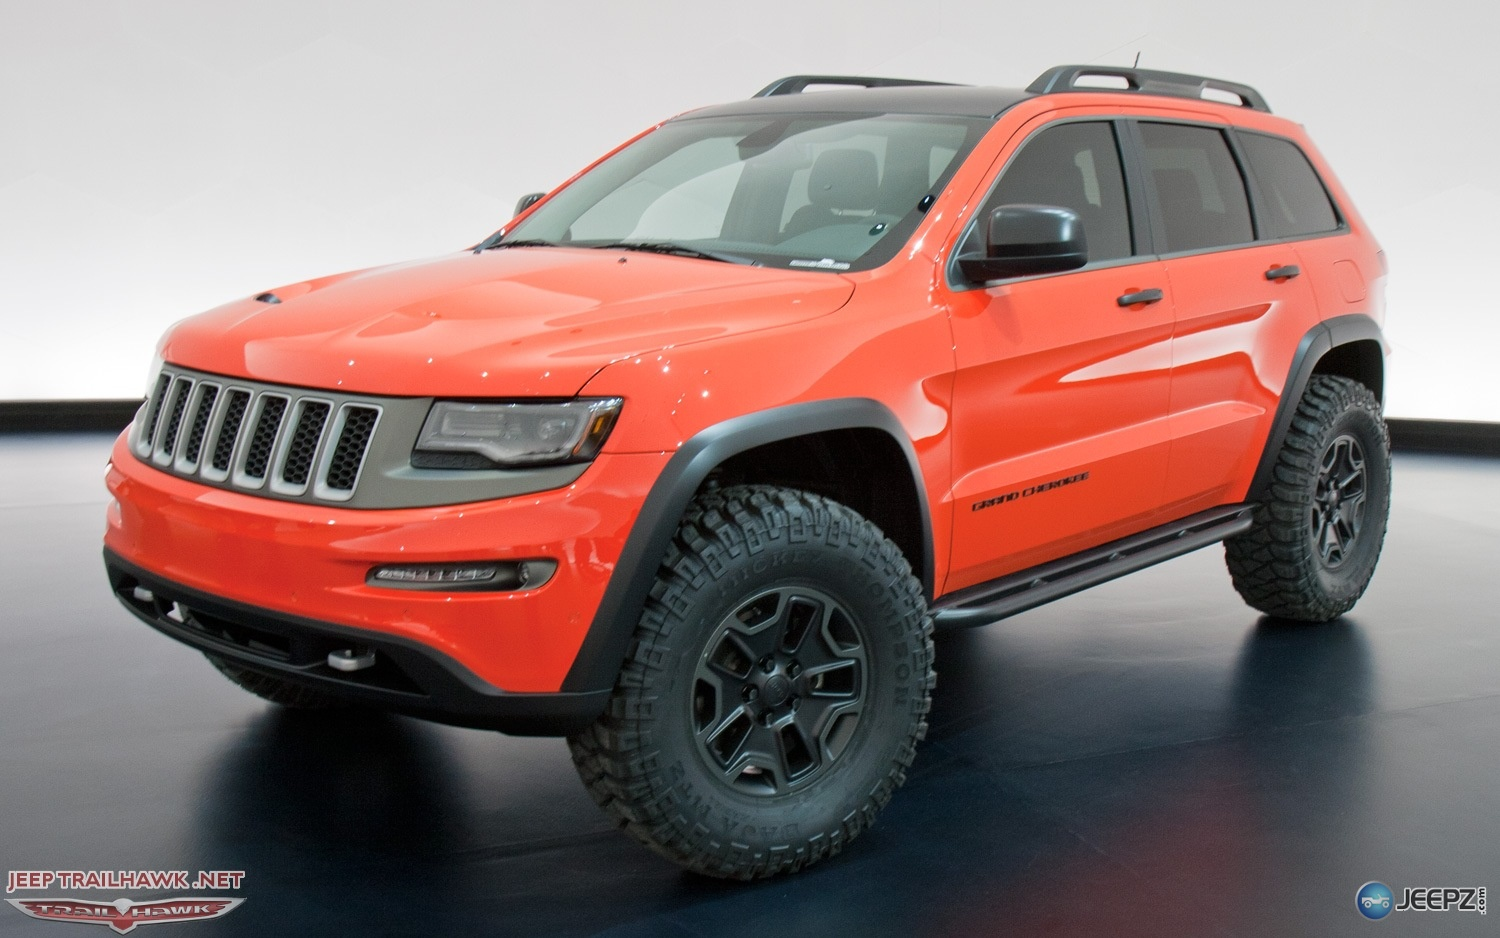 2017 2018 Trailhawk Reviews Let S Hear Em Page 2 Jeep Garage Forum